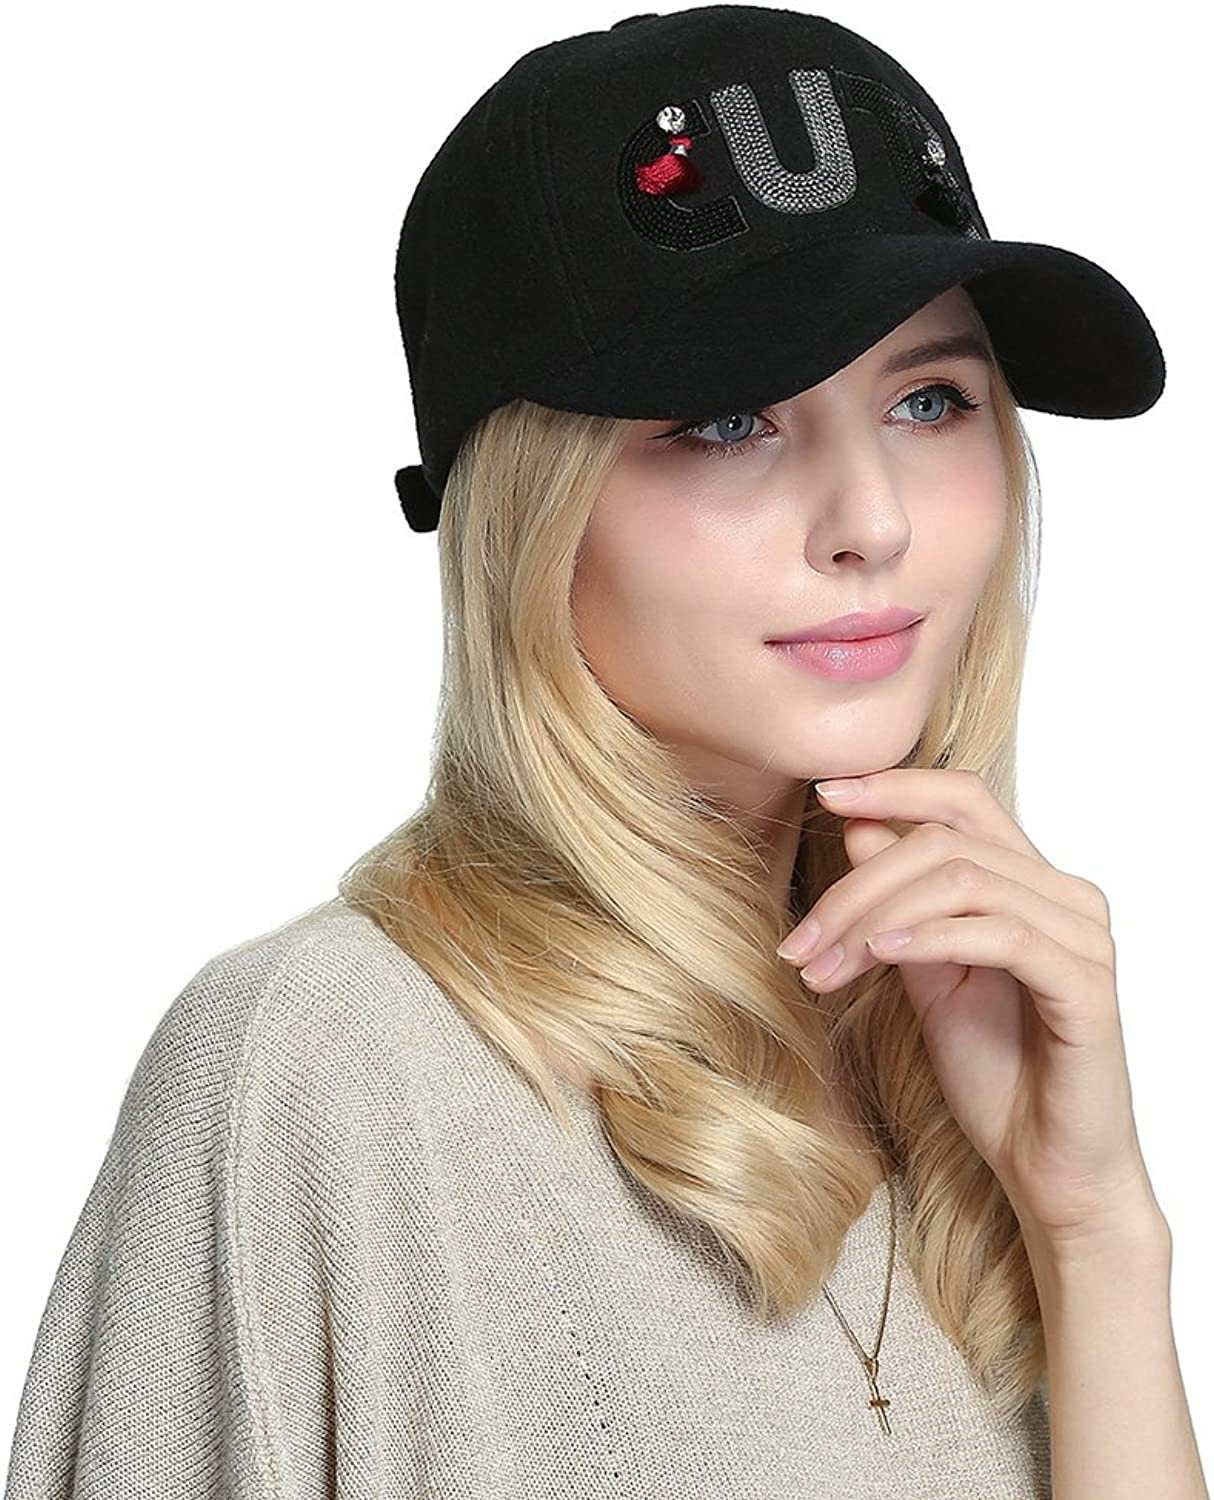 Women's Winter Cute Hiphop Hat Skull Baseball Caps Sports Sun Hats for Students